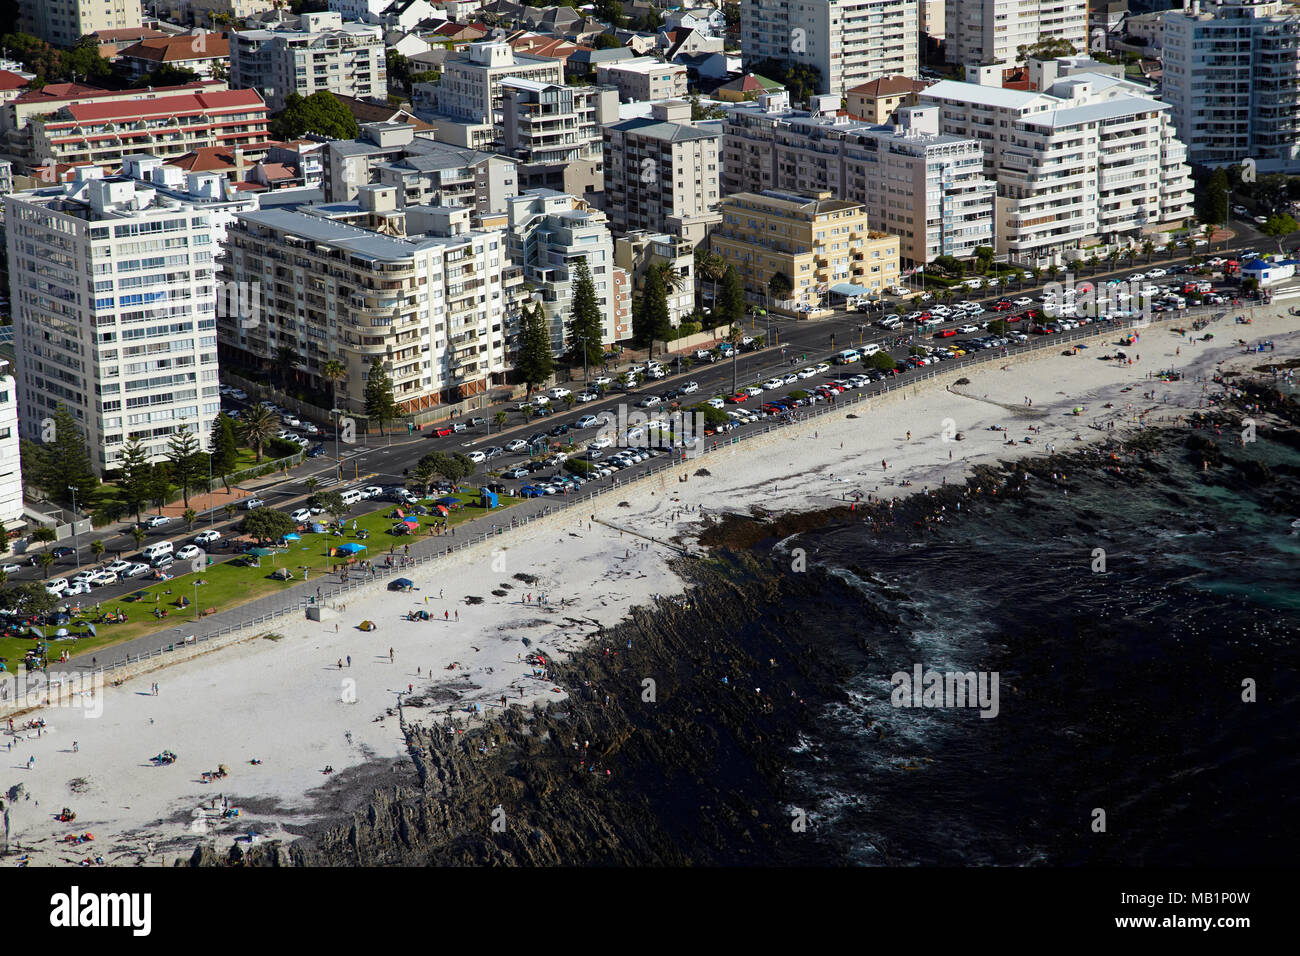 Beach, Sea Point, Cape Town, South Africa - aerial - Stock Image